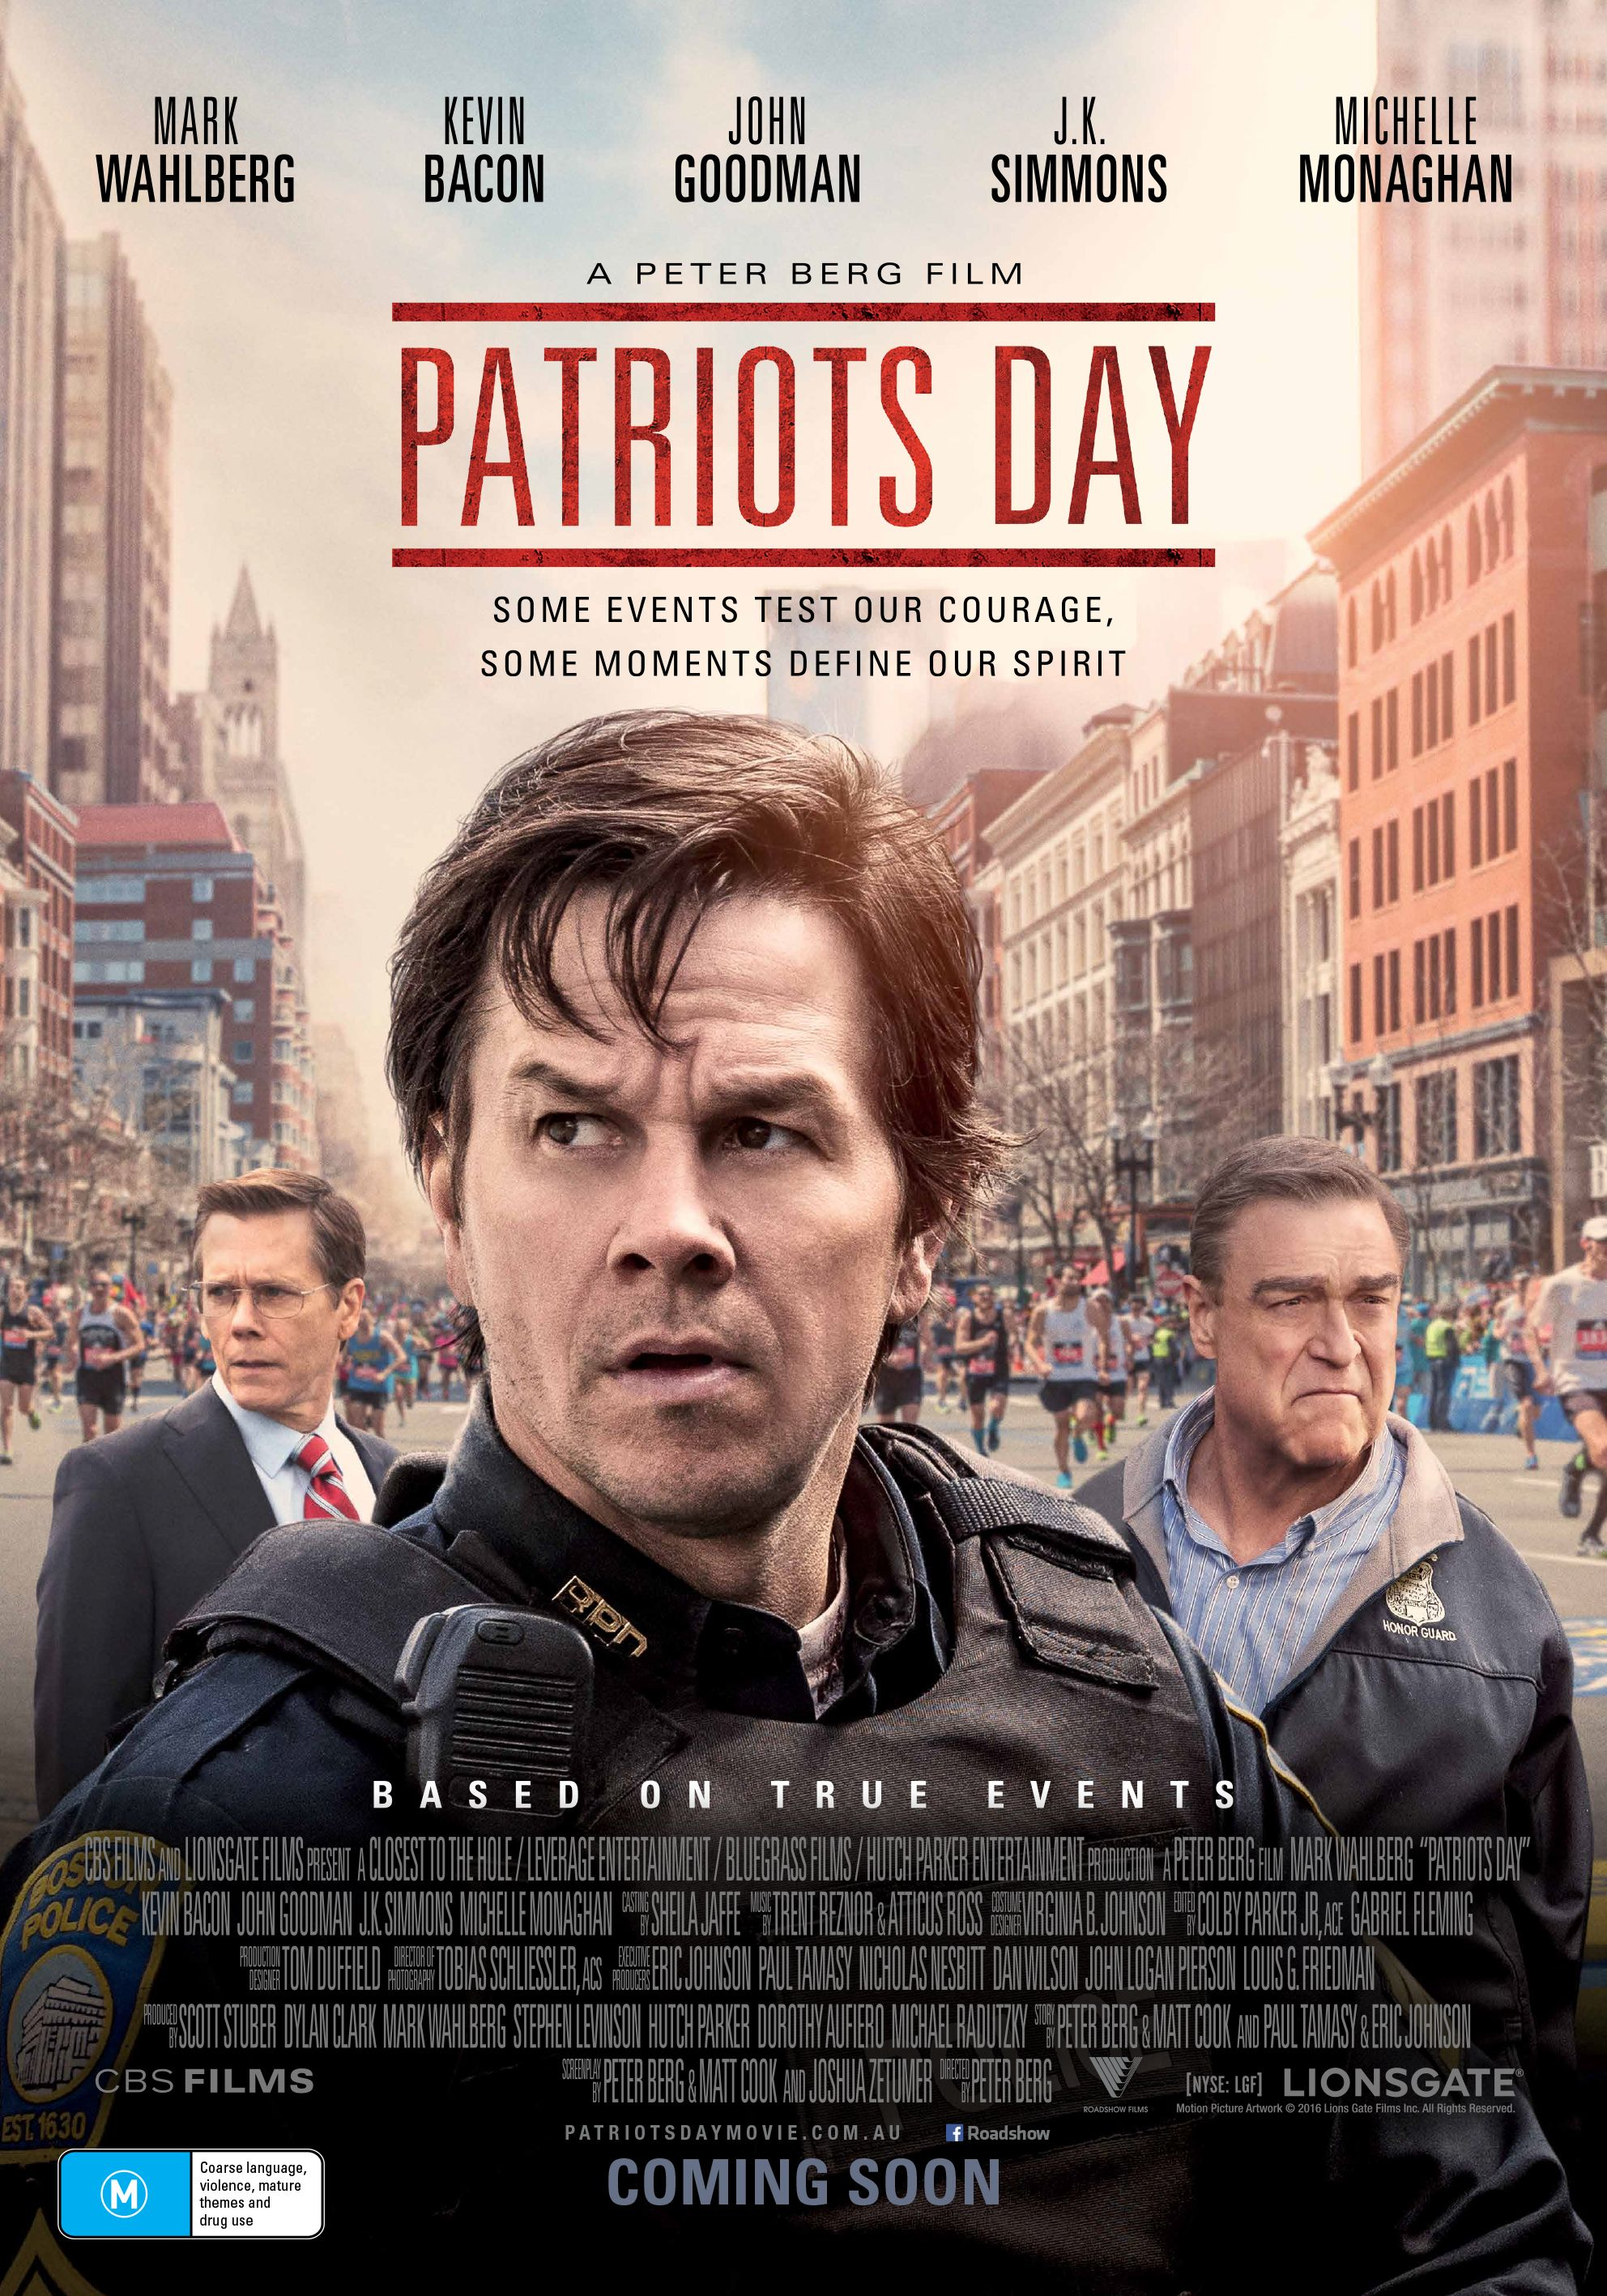 Patriots Day Is A Tense Horrific And Yet Inspiring Film Set Against The Backdrop Of One Of The Most Terrible Events To Patriots Day Movie Posters Music Book